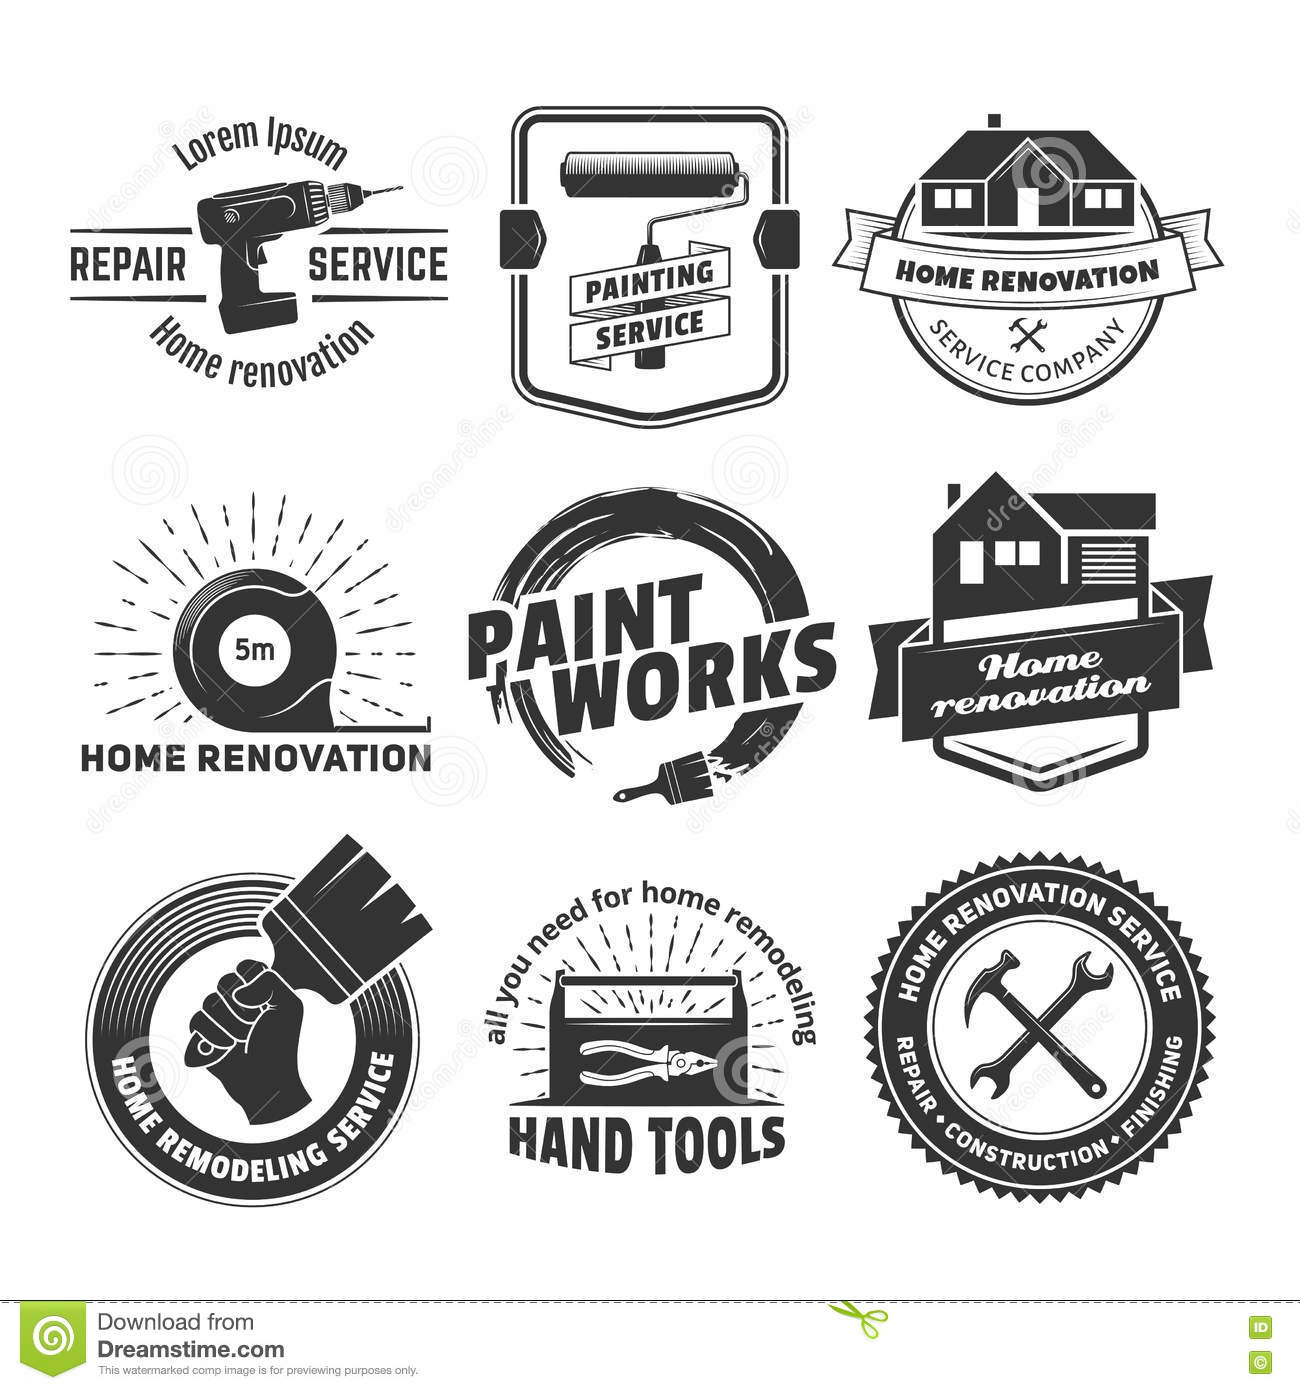 House remodeling logos stock vector. Illustration of hammer ... on contracting logos, home repair services, home renovation, home repair logos, home siding logos, real estate logos, best home improvement logos, property management logos, home repair houses clip art, hvac logos, house painting logos, woodworking logos, home contractor logos, home handyman services, home building logos, home restoration logos, home technology logos, home builders logos, home logo construction, handyman logos,